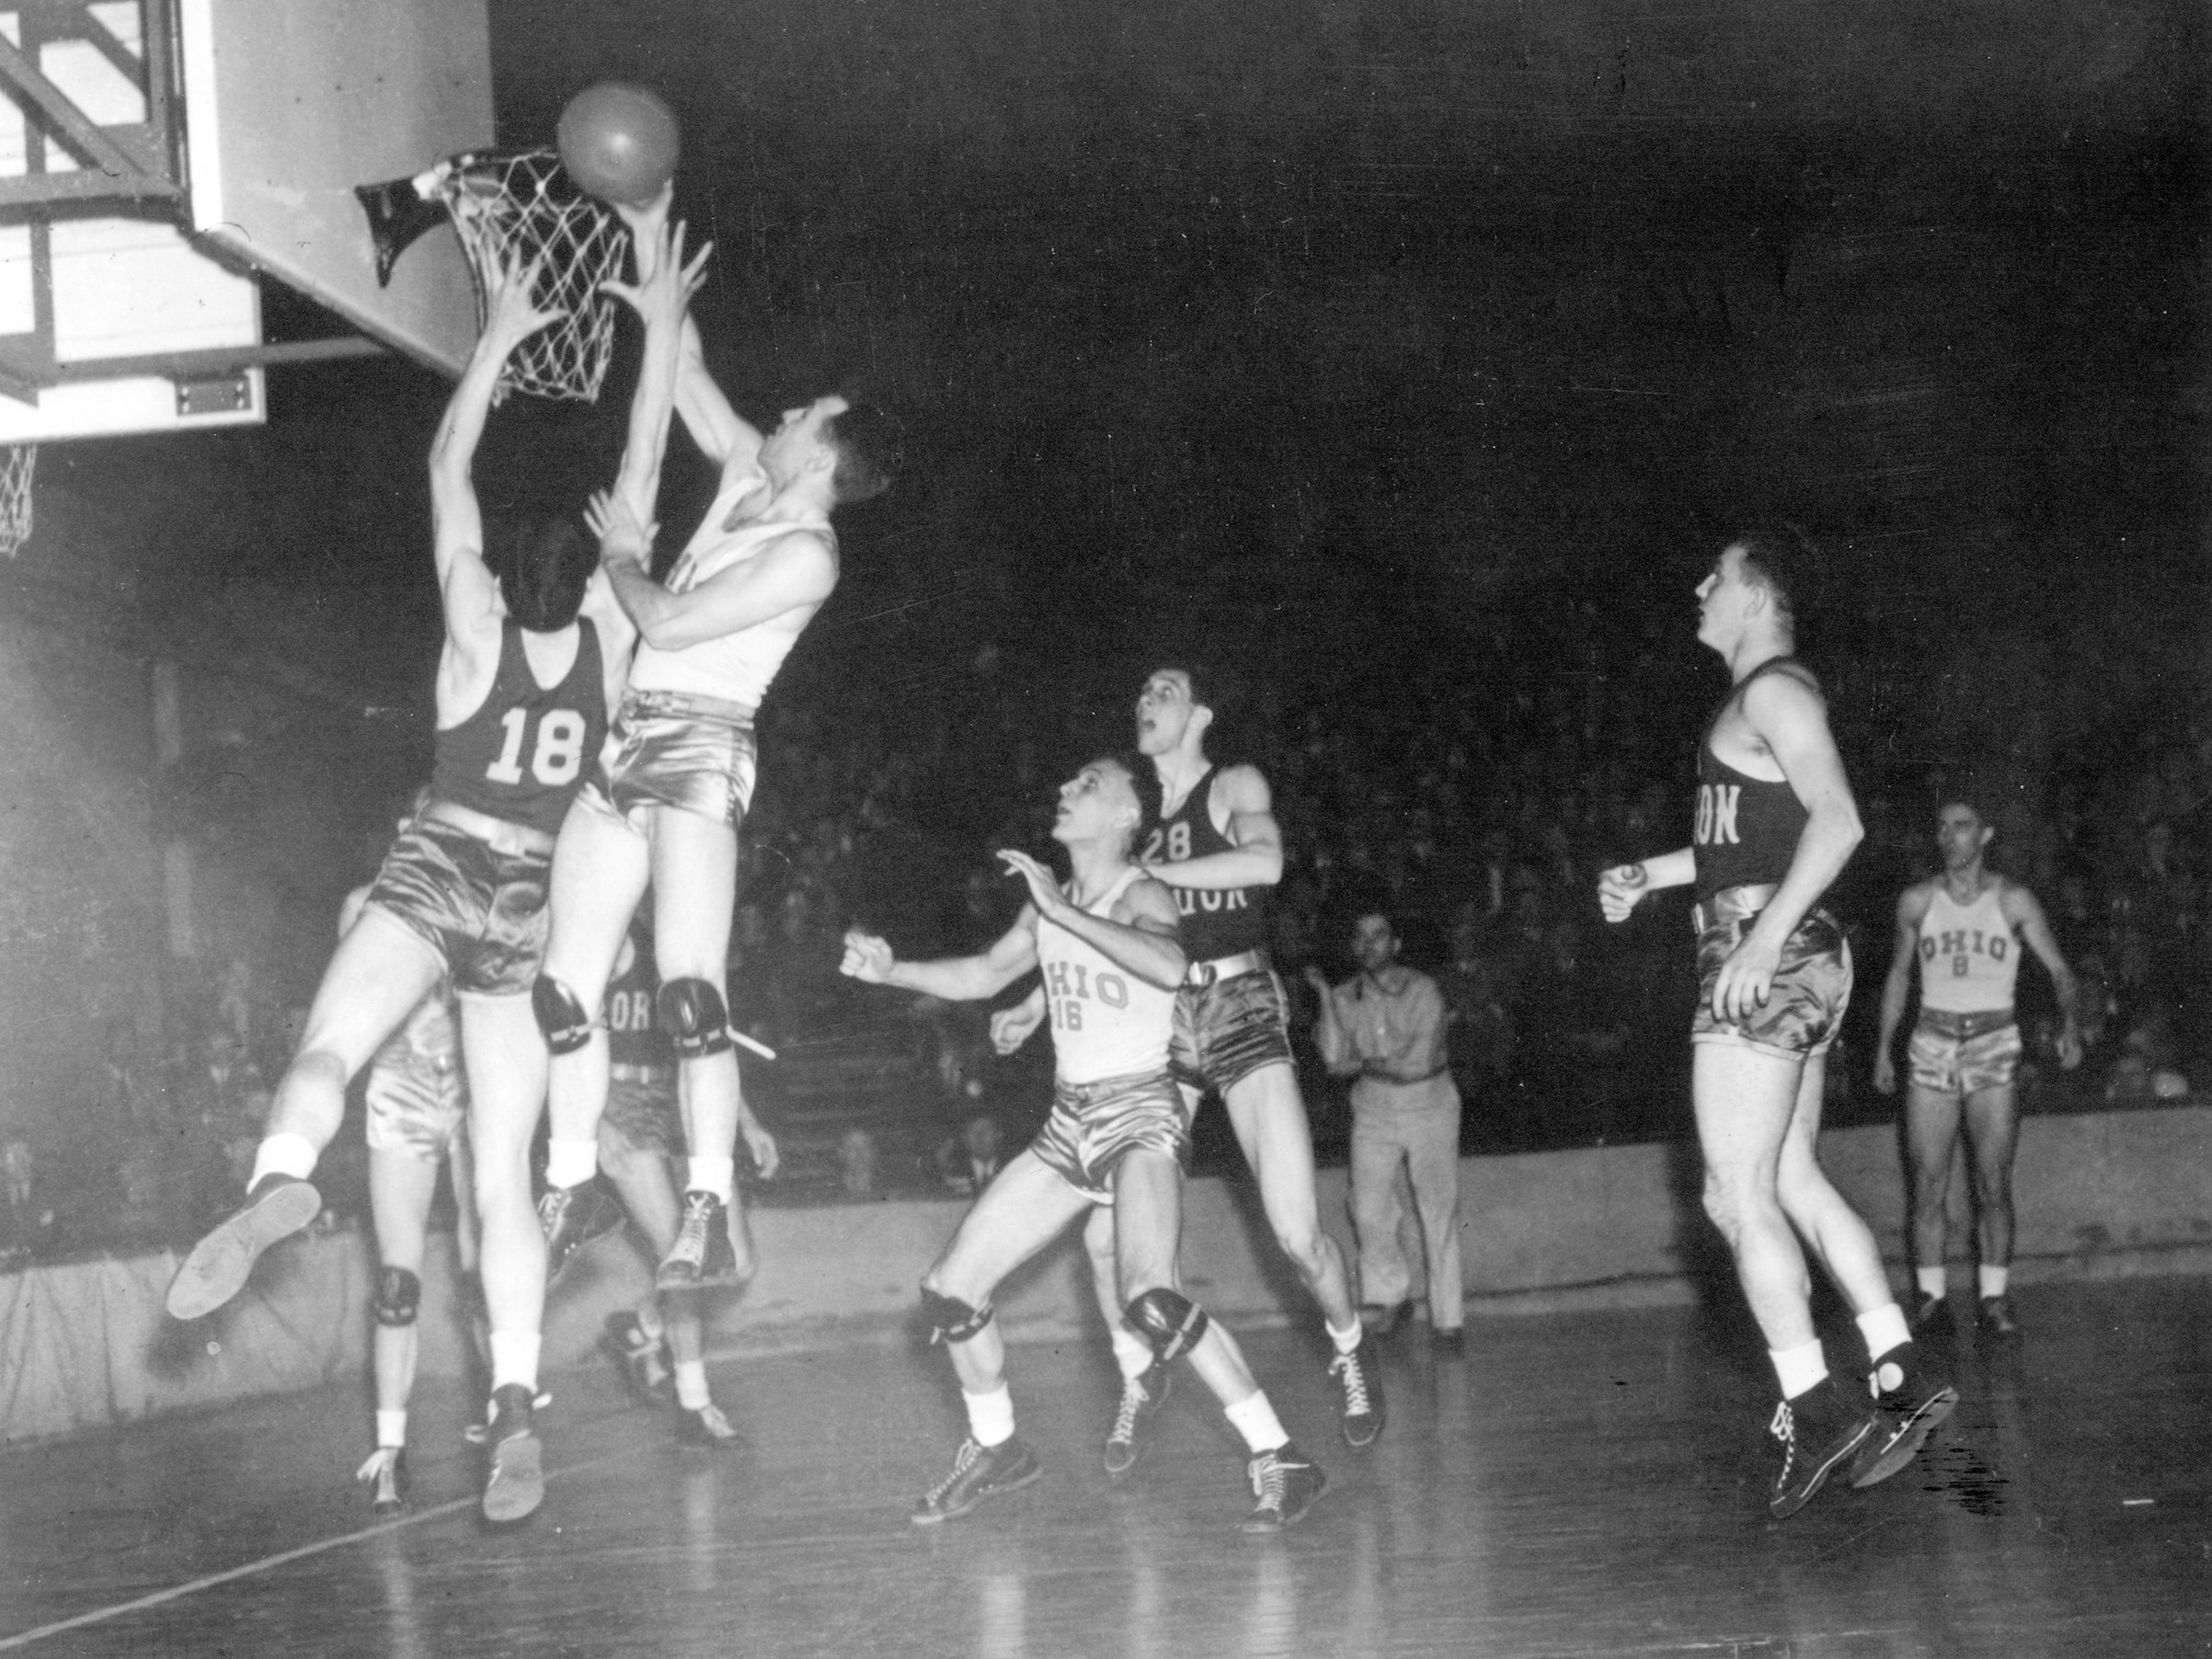 John Schick makes a basket during the first NCAA Men's Basketball National Championship game held in Evanston, Ill., on Mar. 27, 1939.